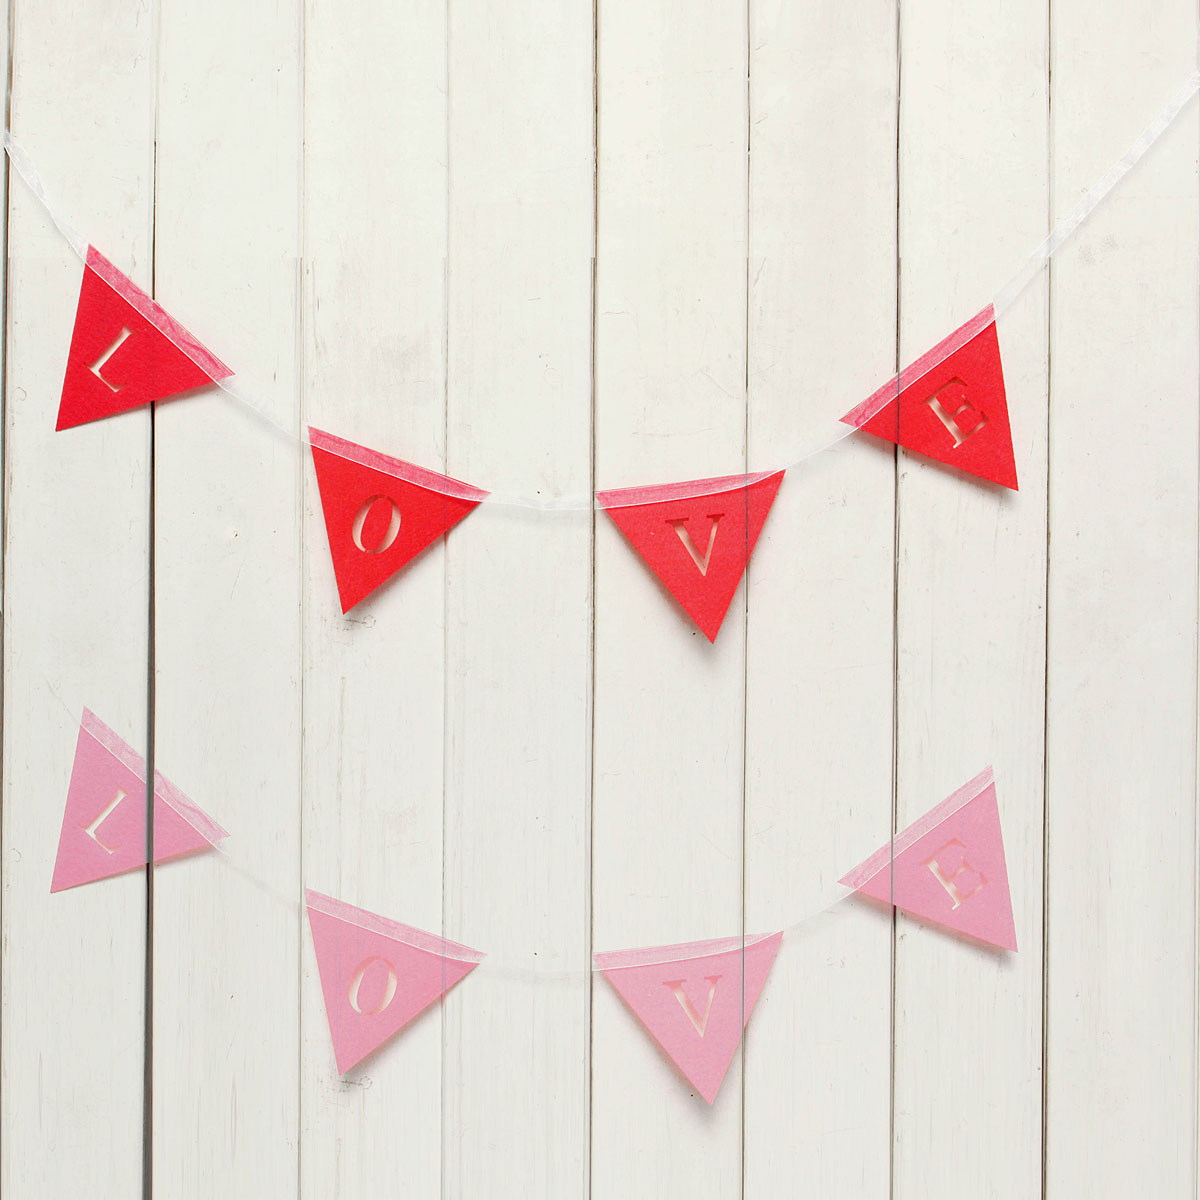 Triangle Shape LOVE Pink Red Wedding Banner Hanging Paper Garland Chain Party Bunting Decoration